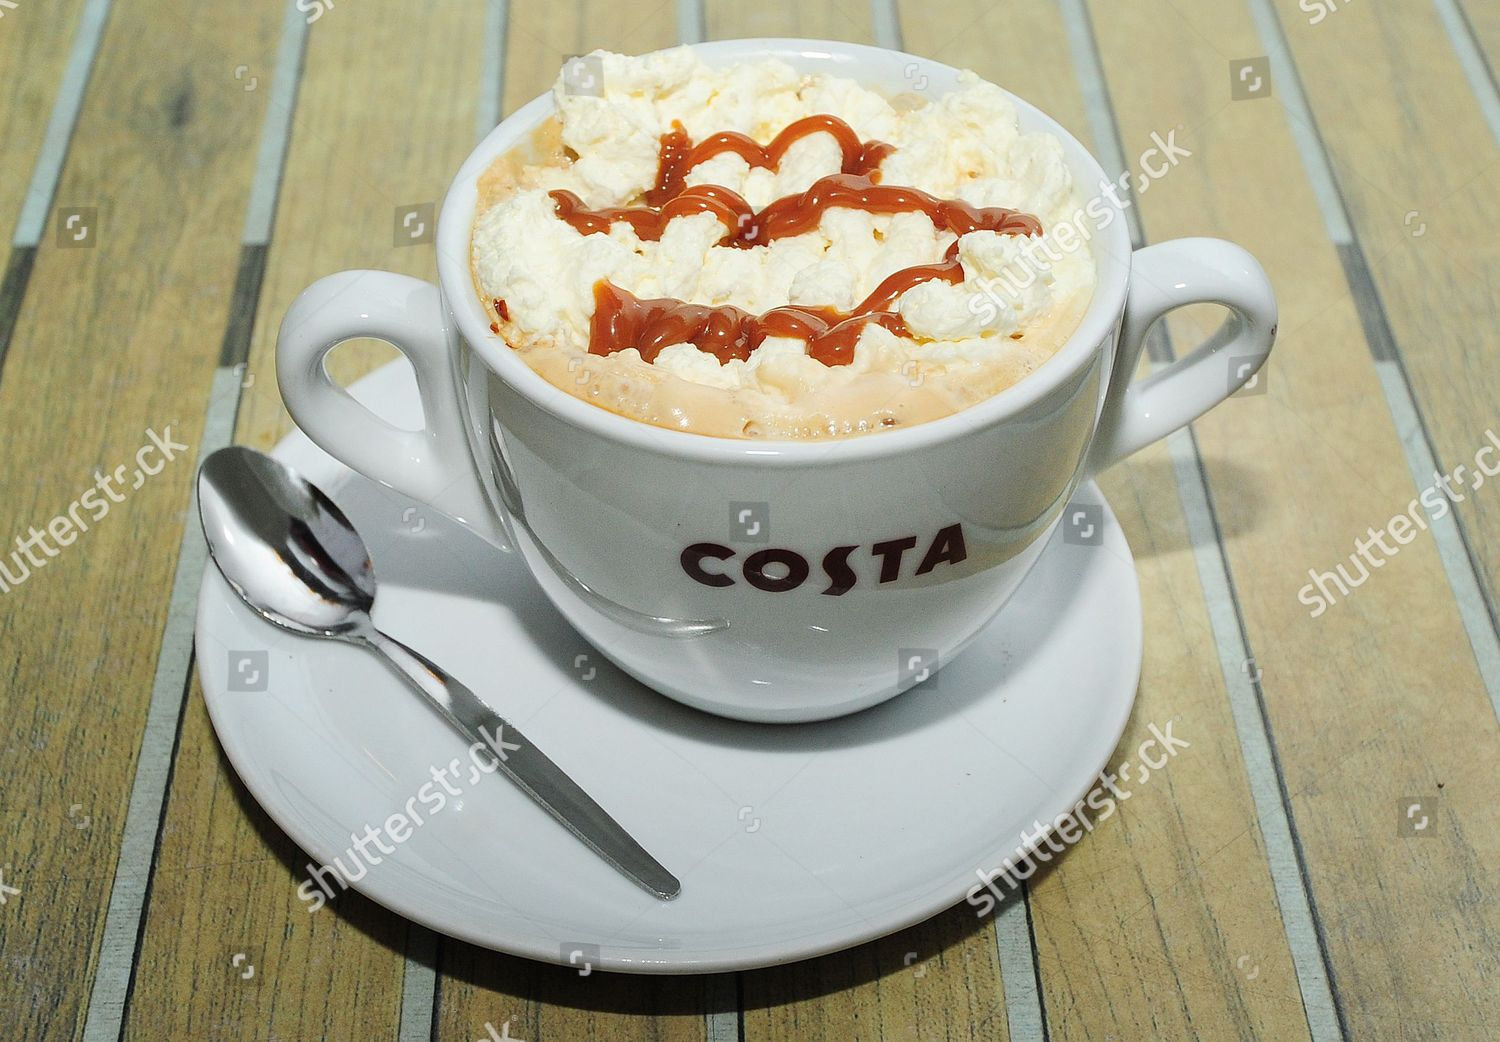 Pictured Large Sticky Toffee Latte Costa Coffee Editorial Stock Photo Stock Image Shutterstock